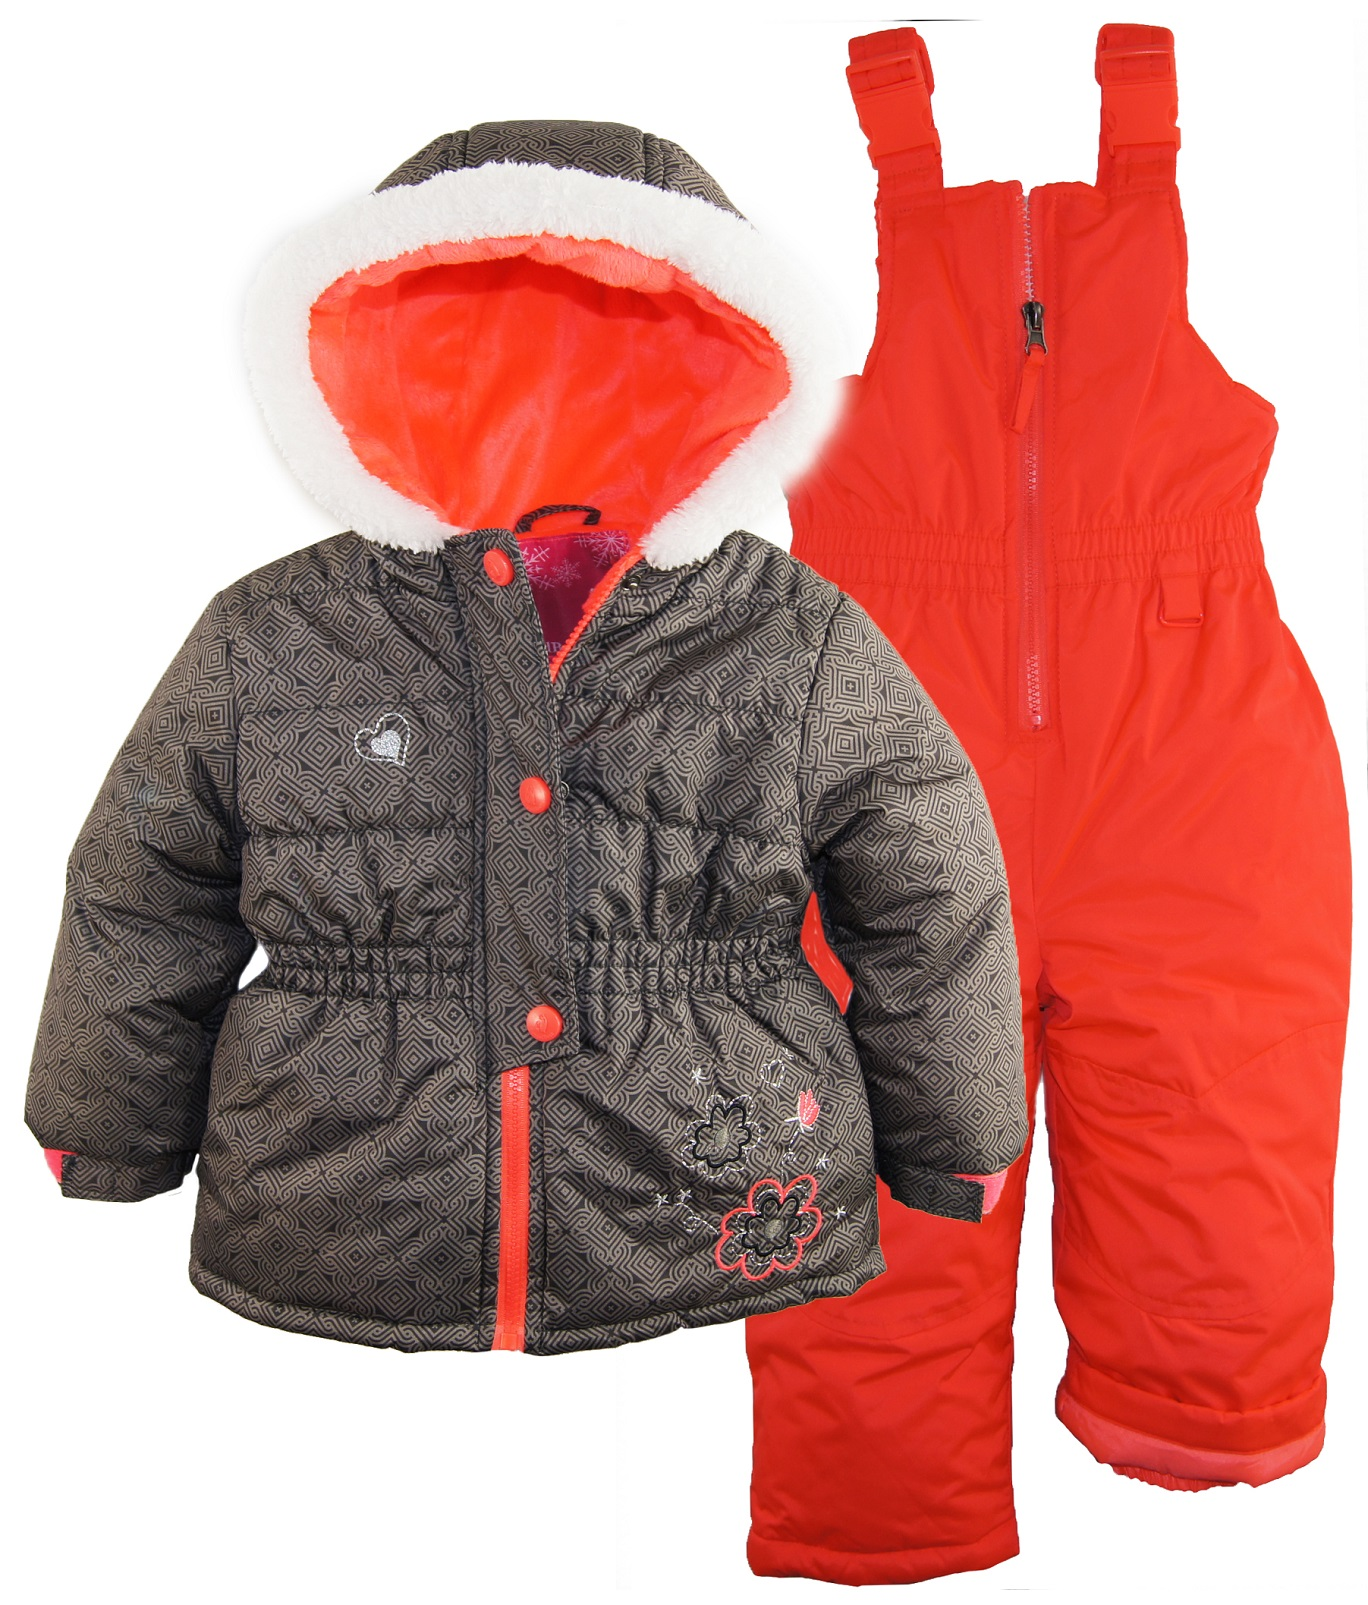 Rugged Bear Baby Girl Ski Jacket